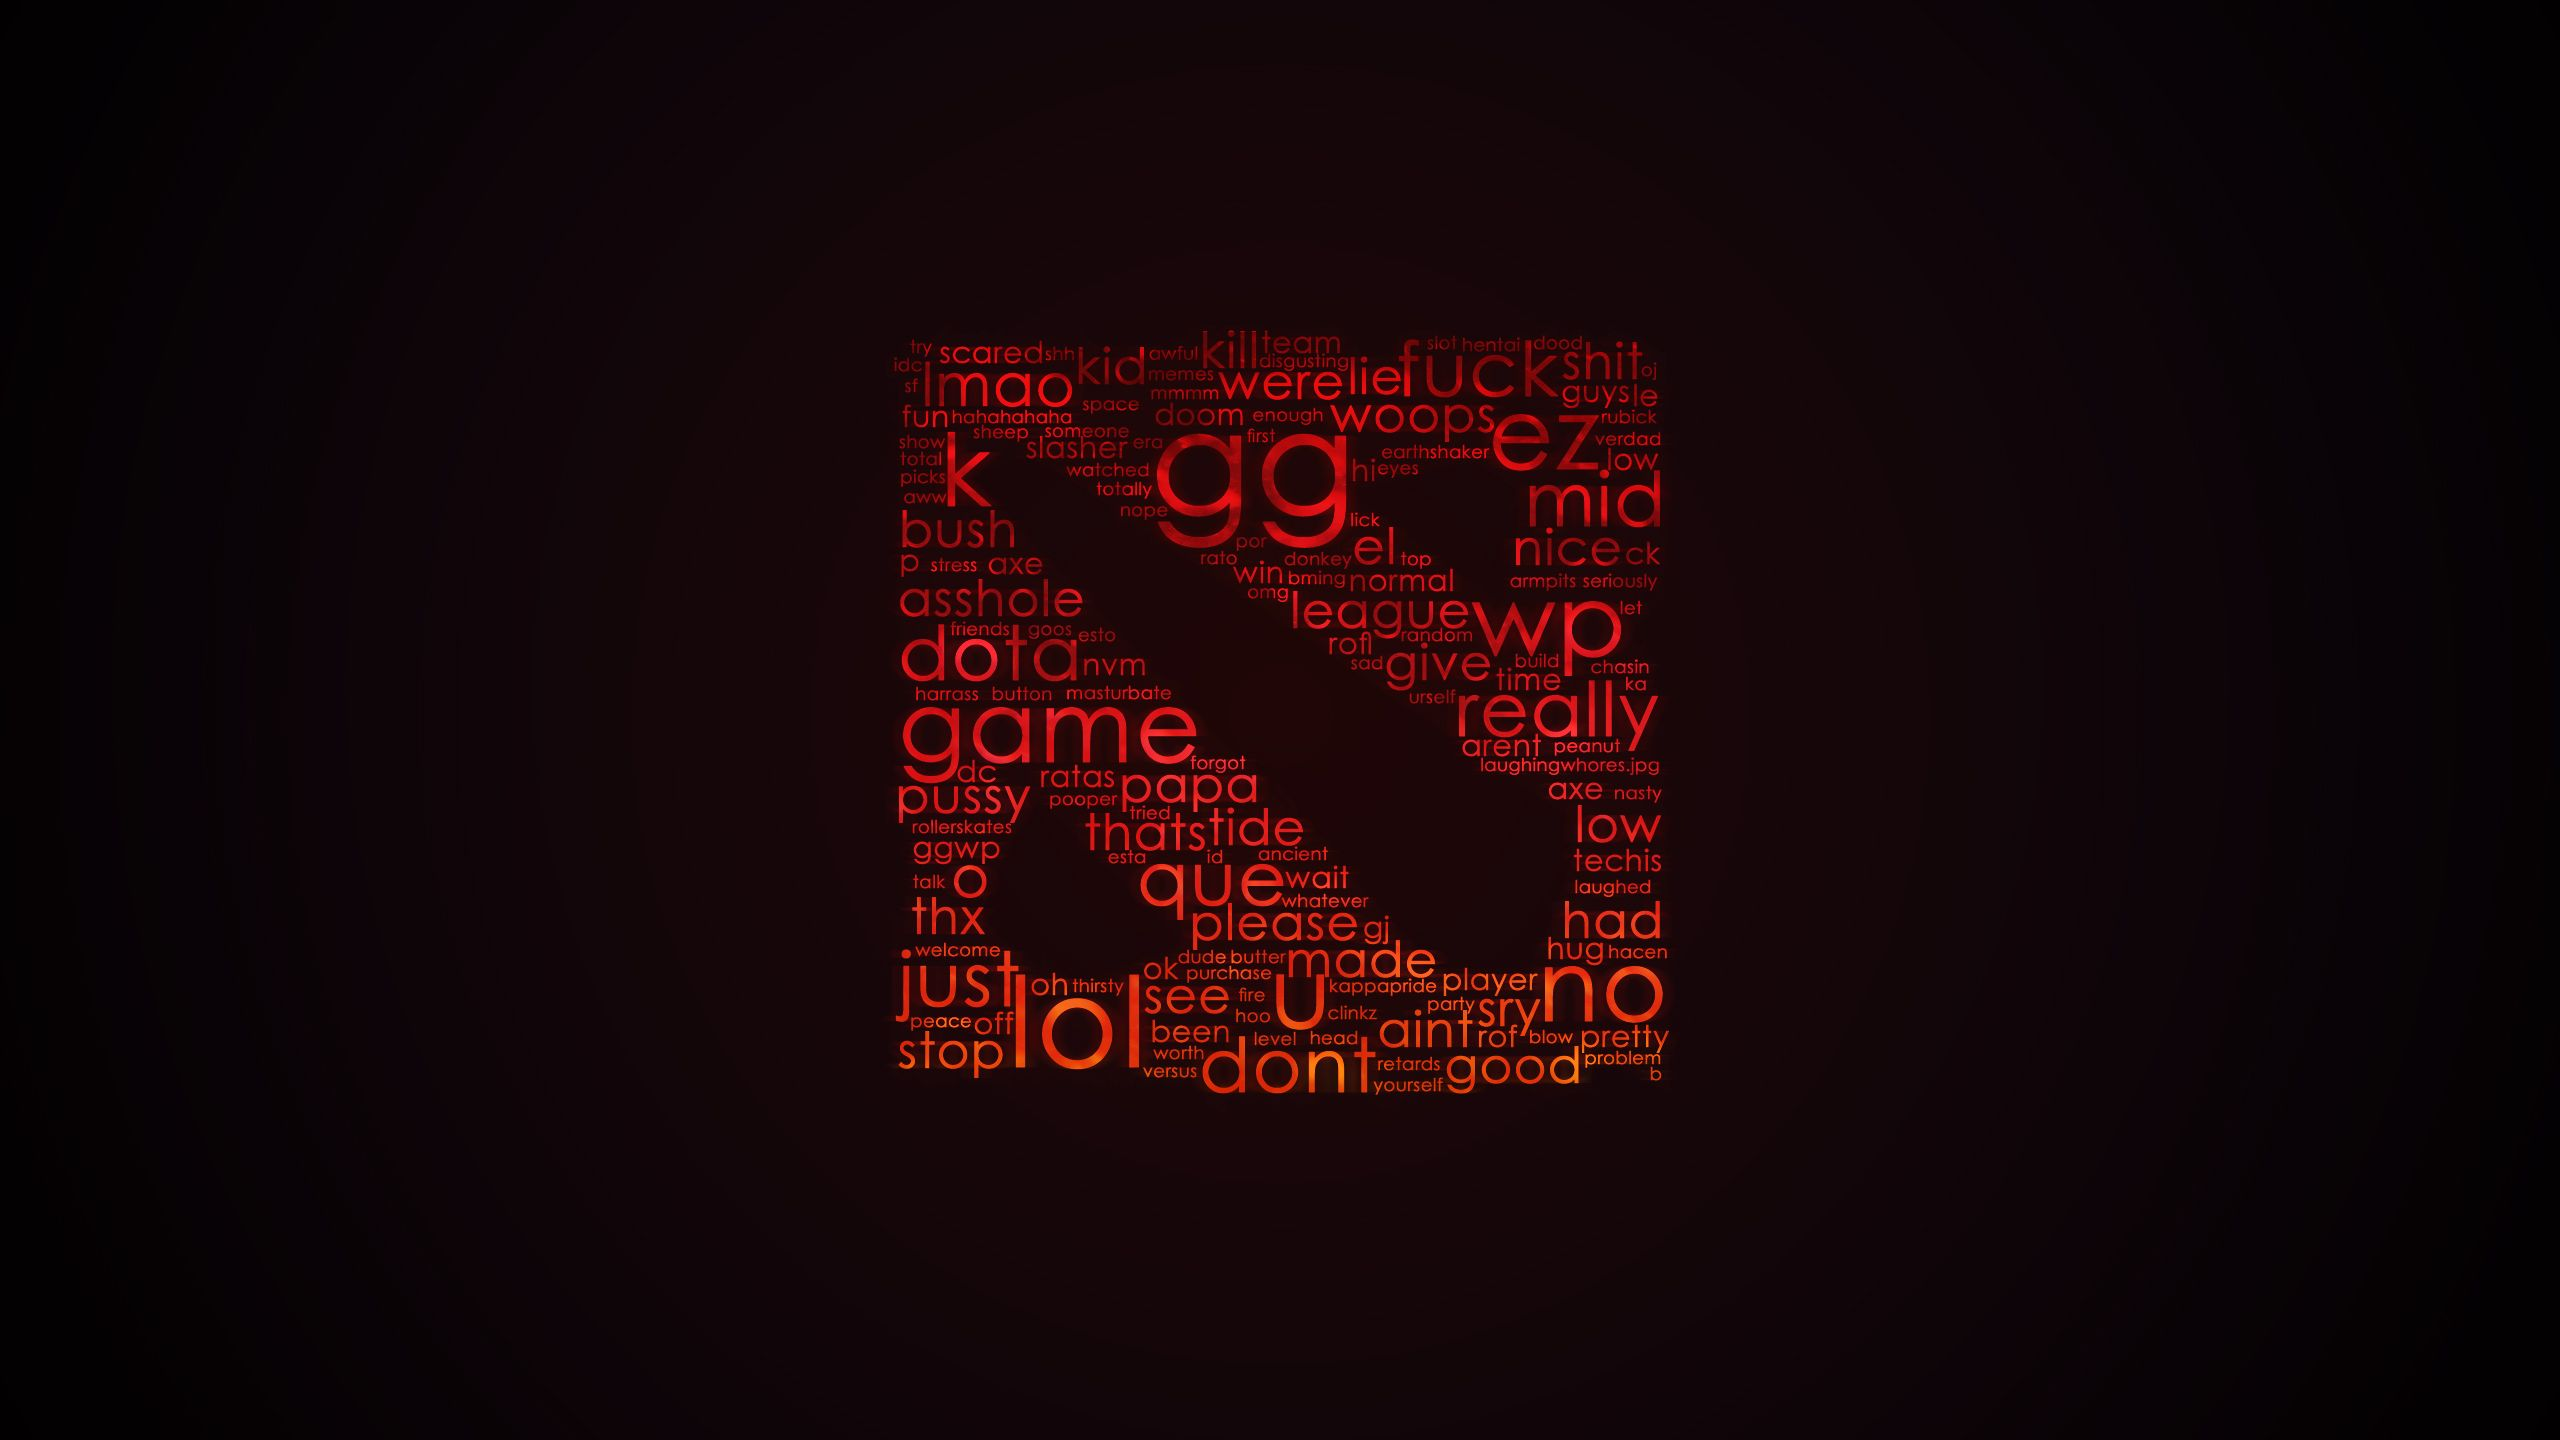 dota 2 logo wallpaper for android sdeerwallpaper